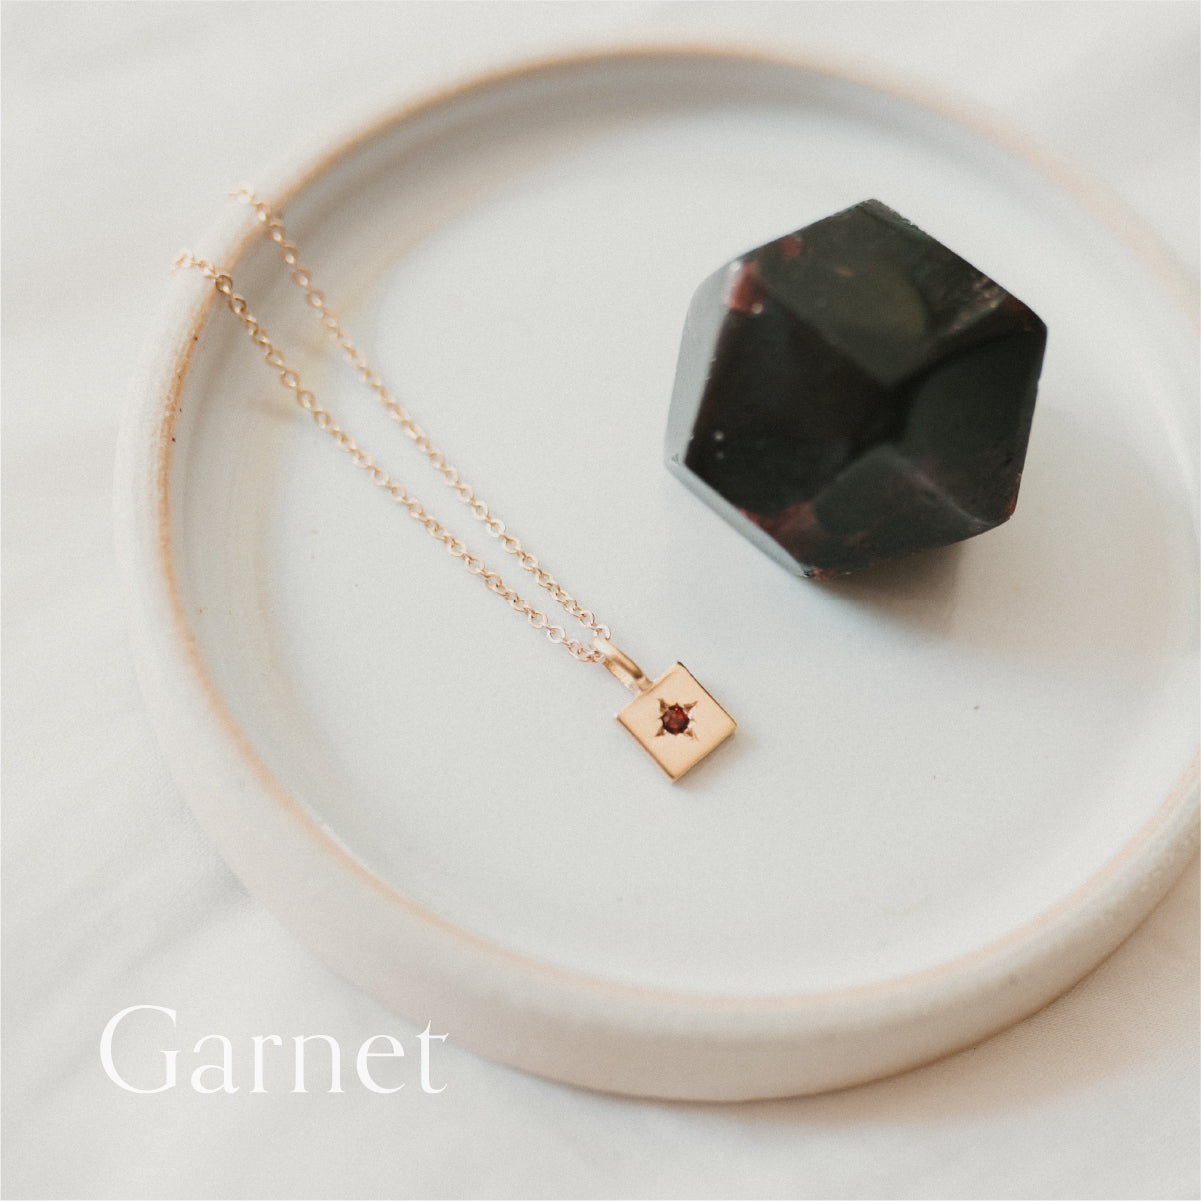 Garnet gemstone forecast